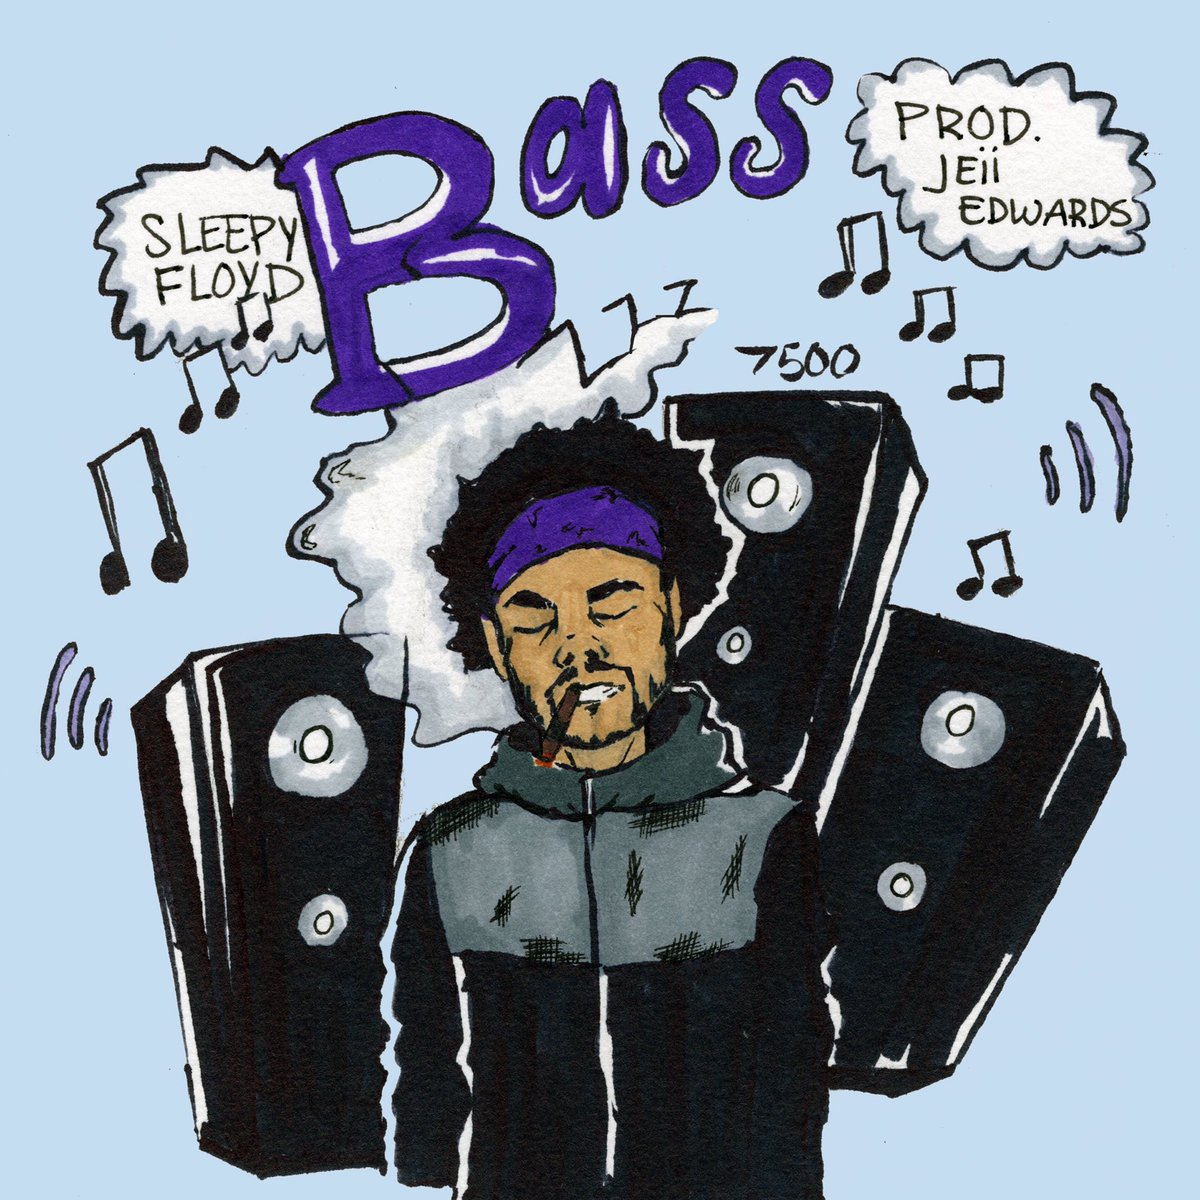 SLEEPY FLOYD BASS prod JEII EDWARDS — Us Versus The World